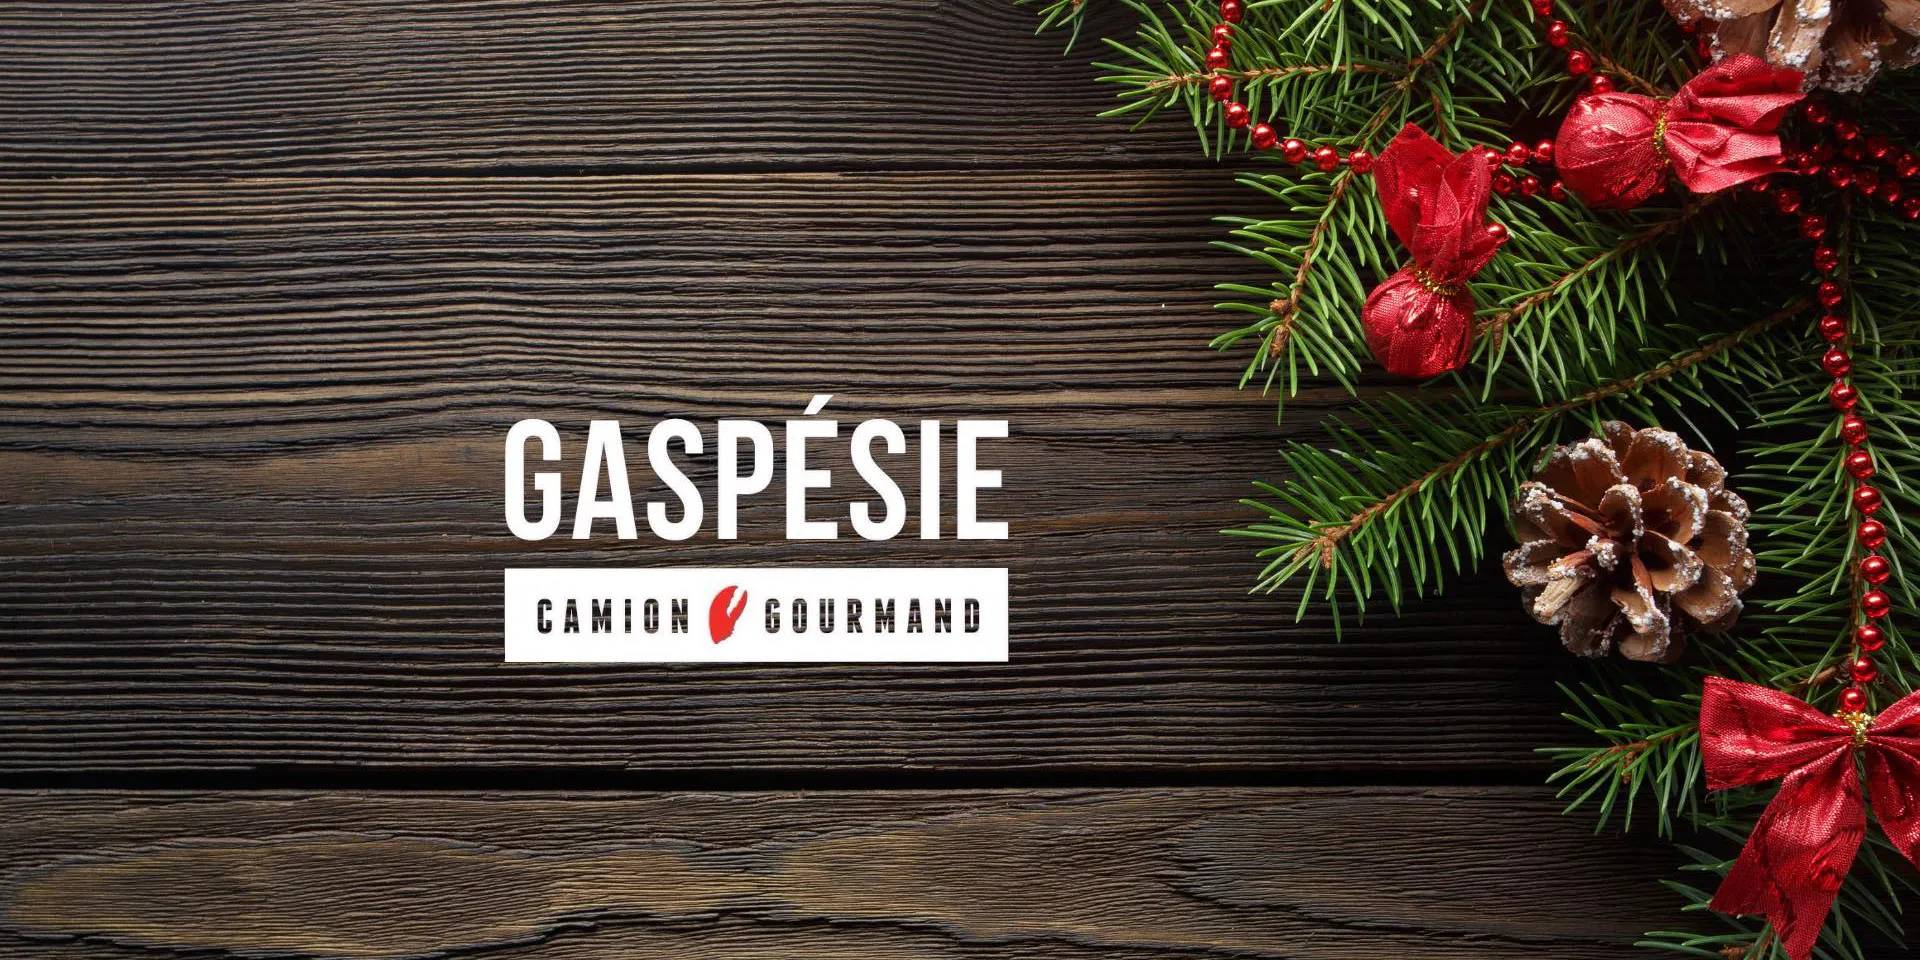 Gaspesie Camion Gourmand 1 picture